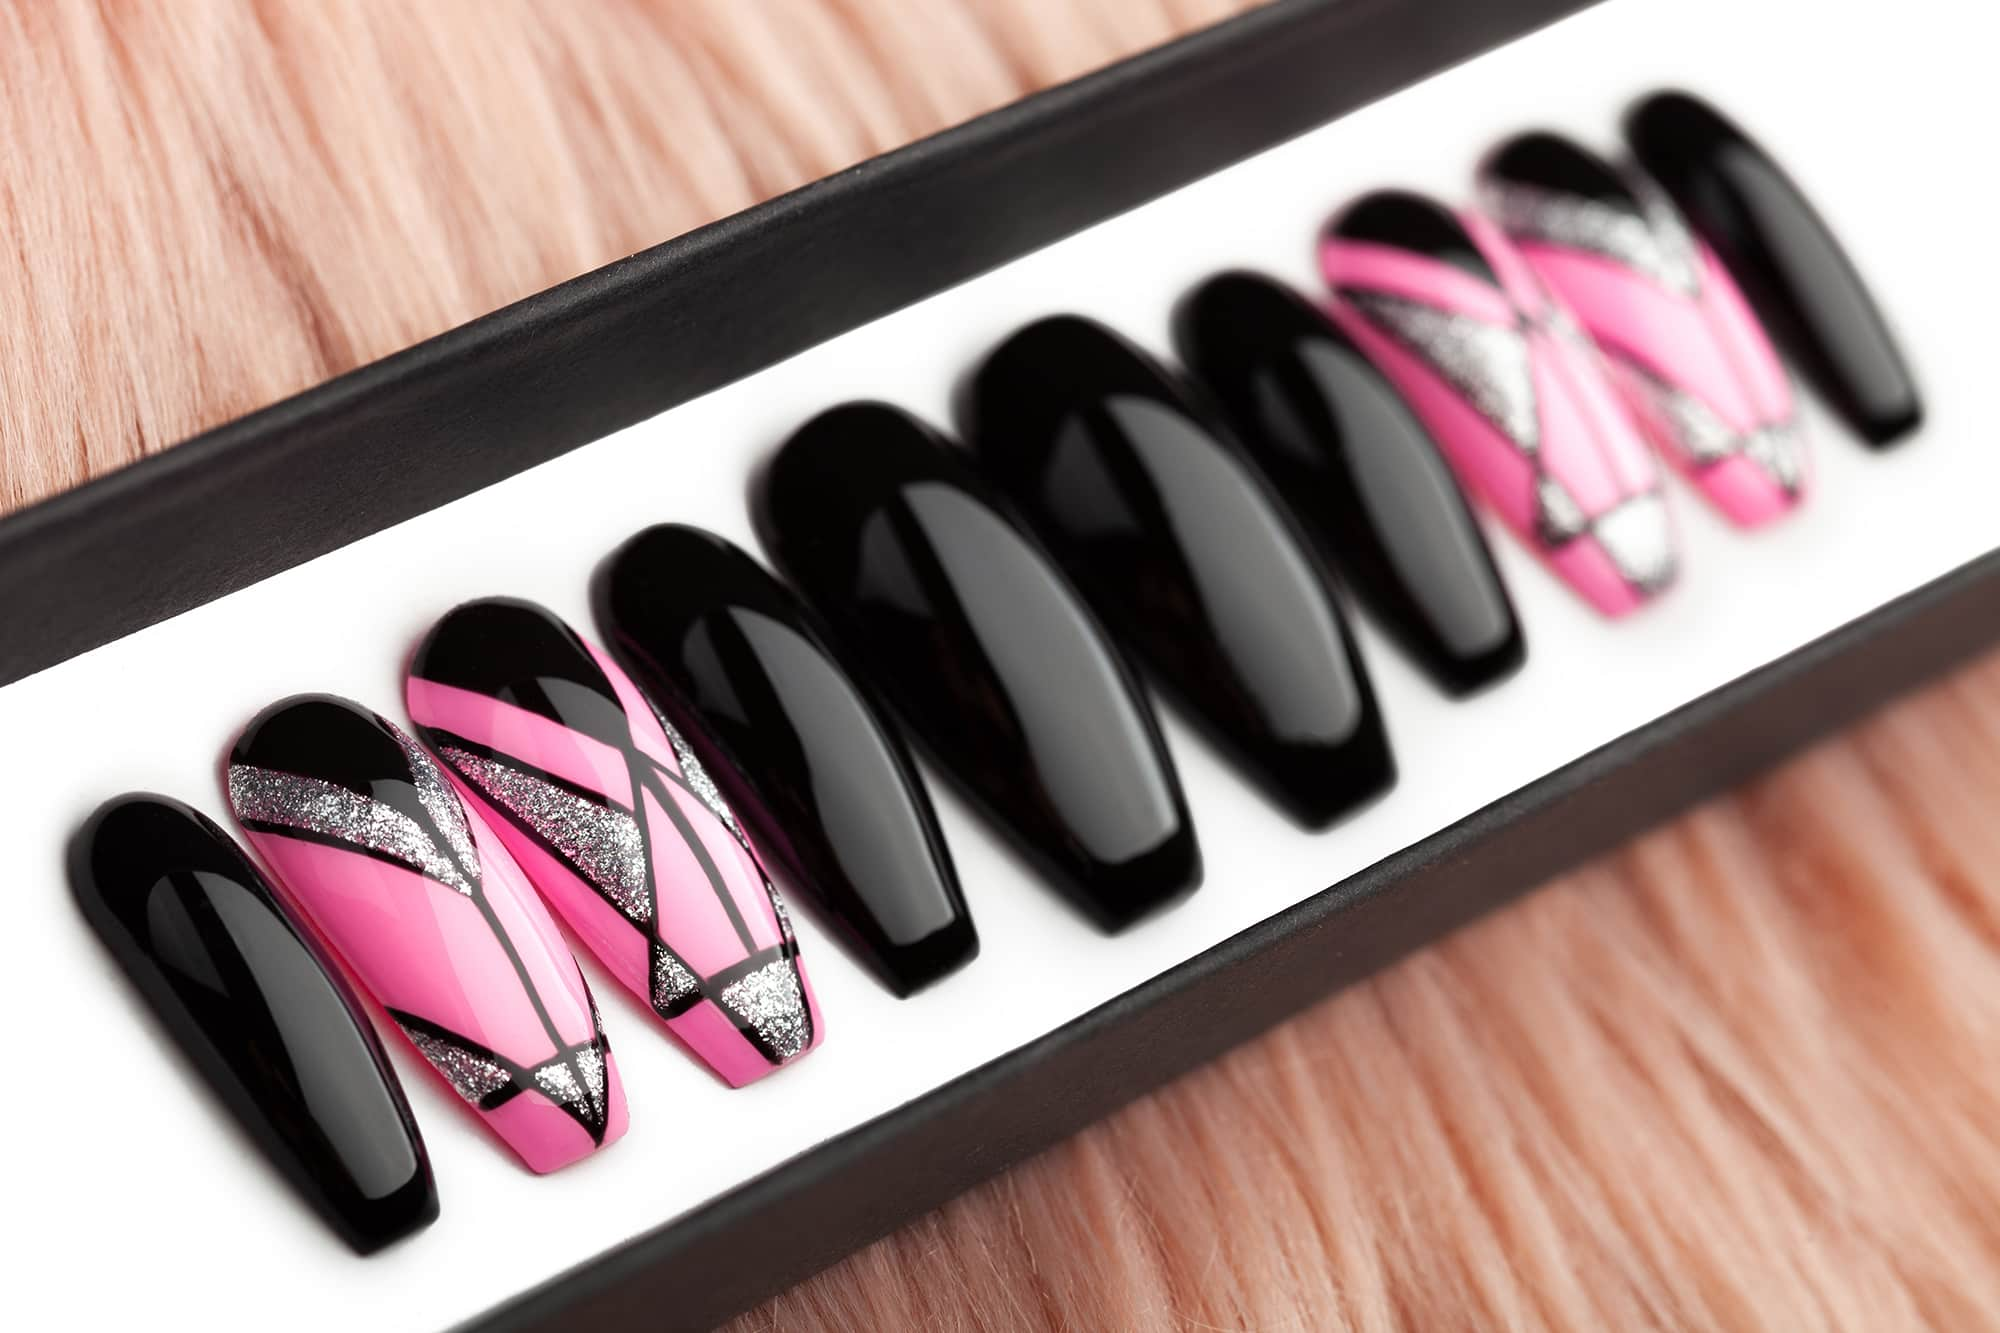 Glossy black press on nails with pink accent nails and geometry design